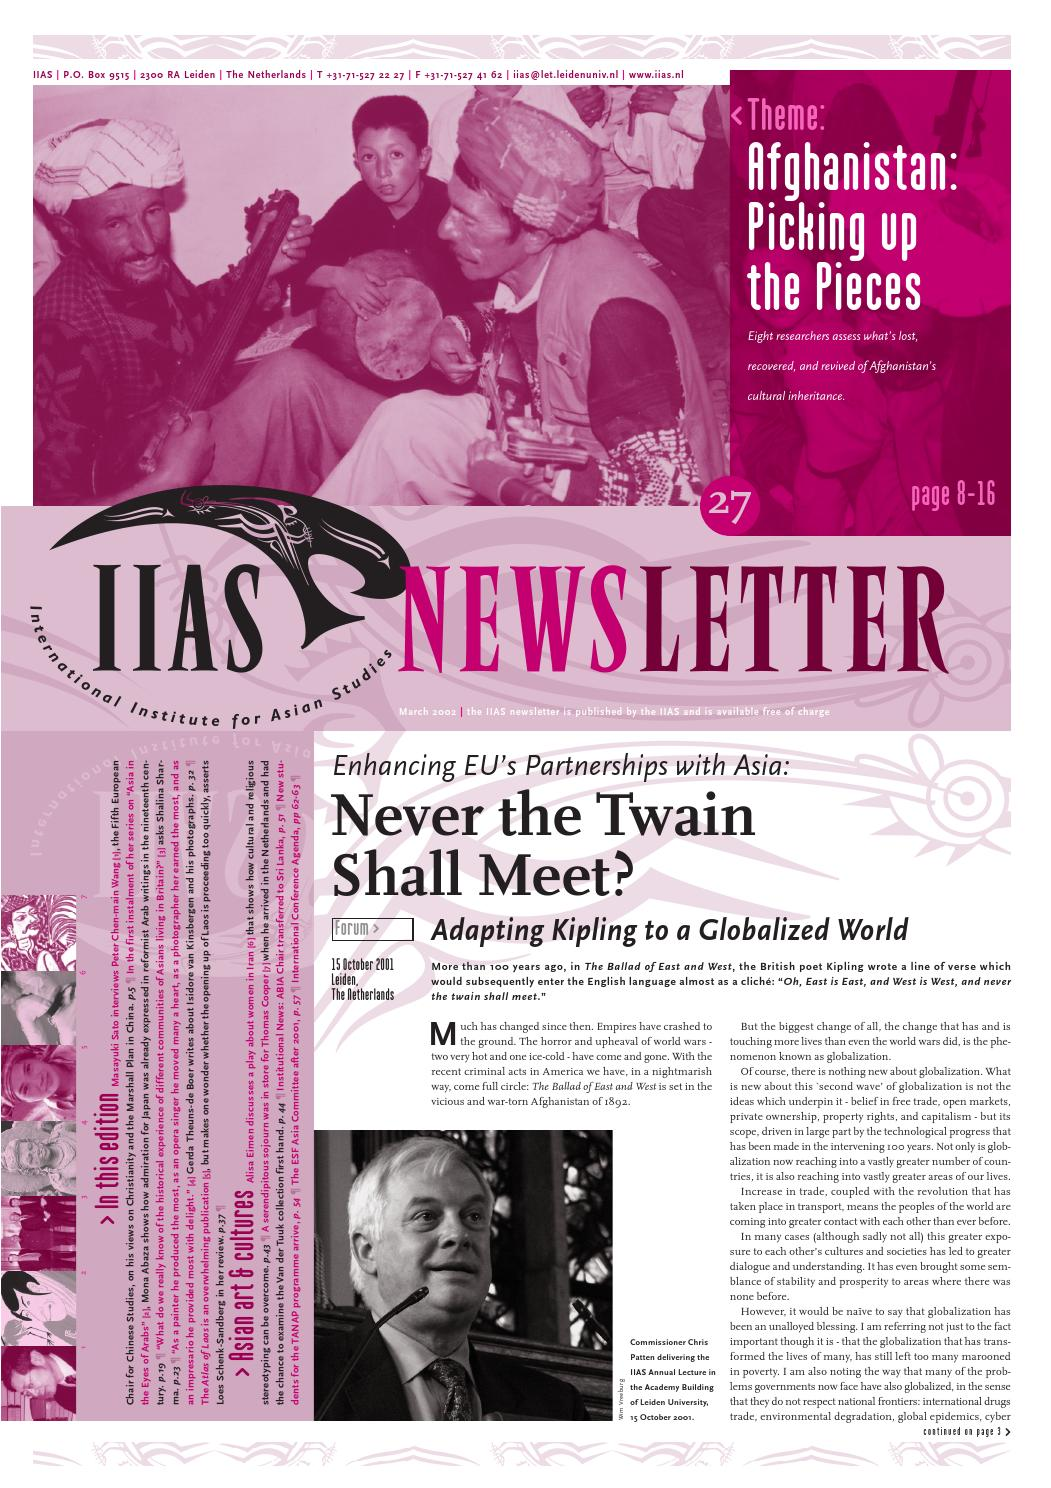 Iias Newsletter 27 By International Institute For Asian Studies Issuu Moeszaffir Gauri Folded Clutch Bag Blue Silver Ampamp Black